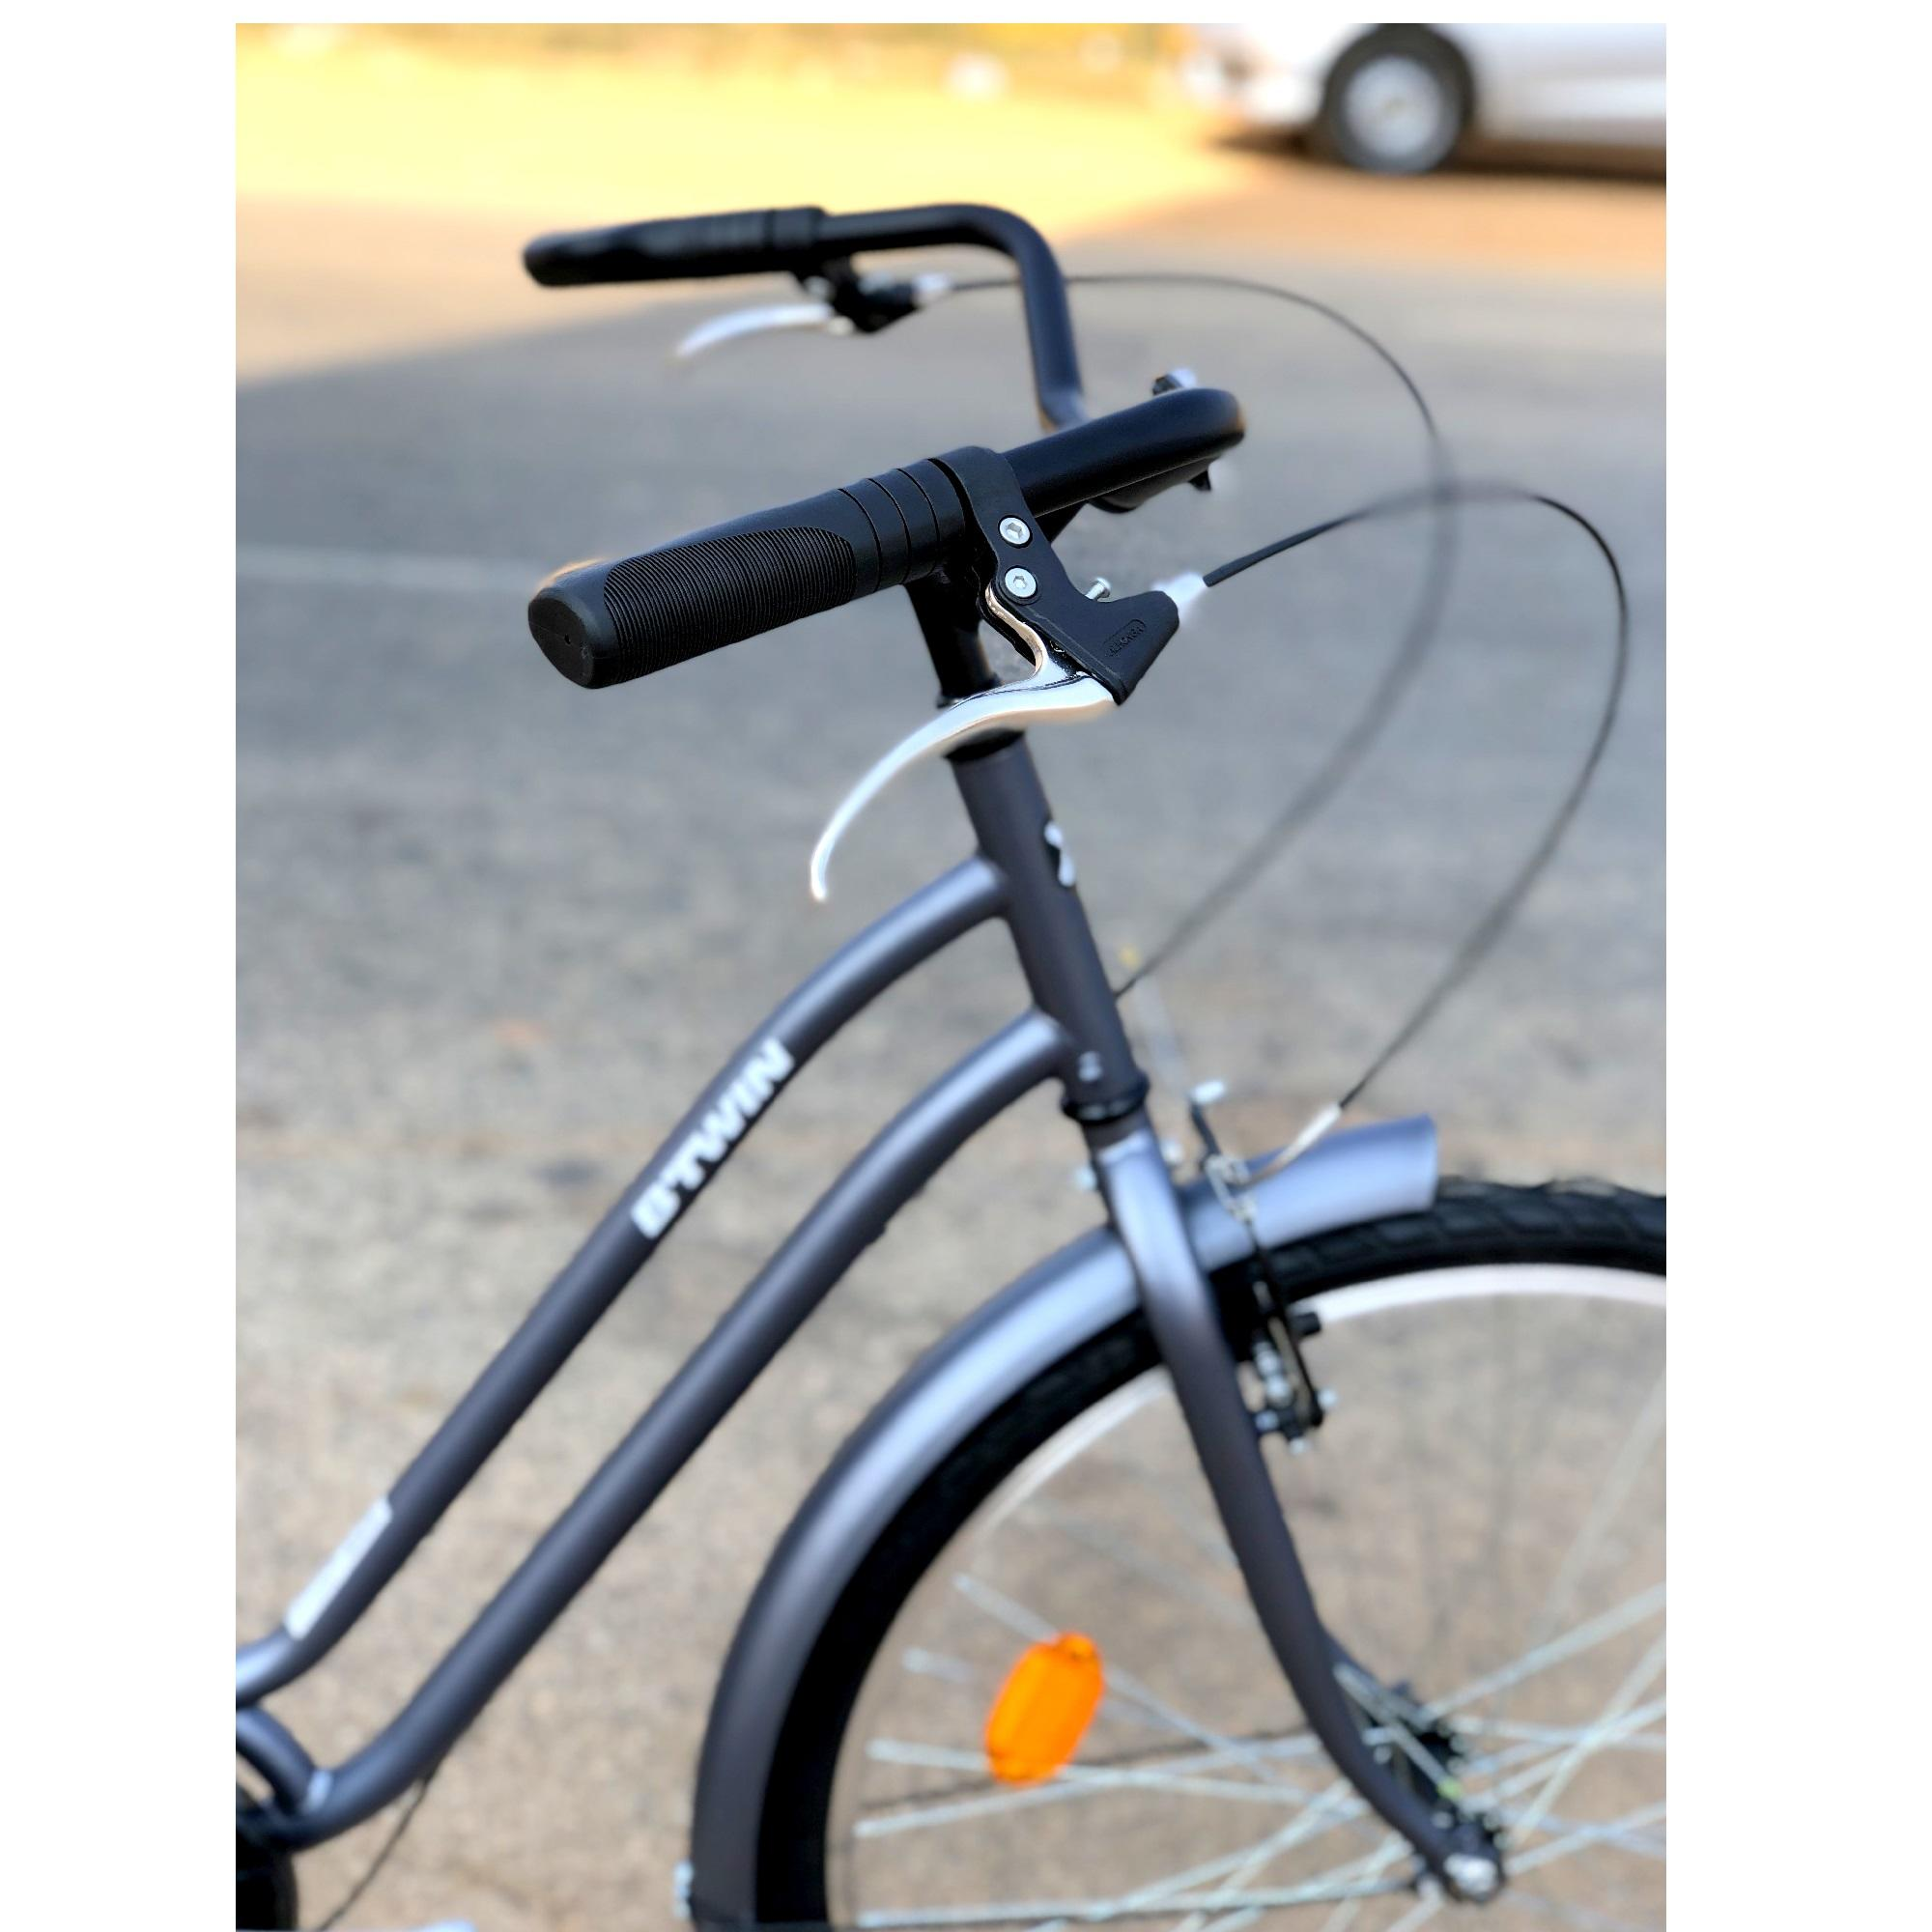 Elops 100 classic city cycle.